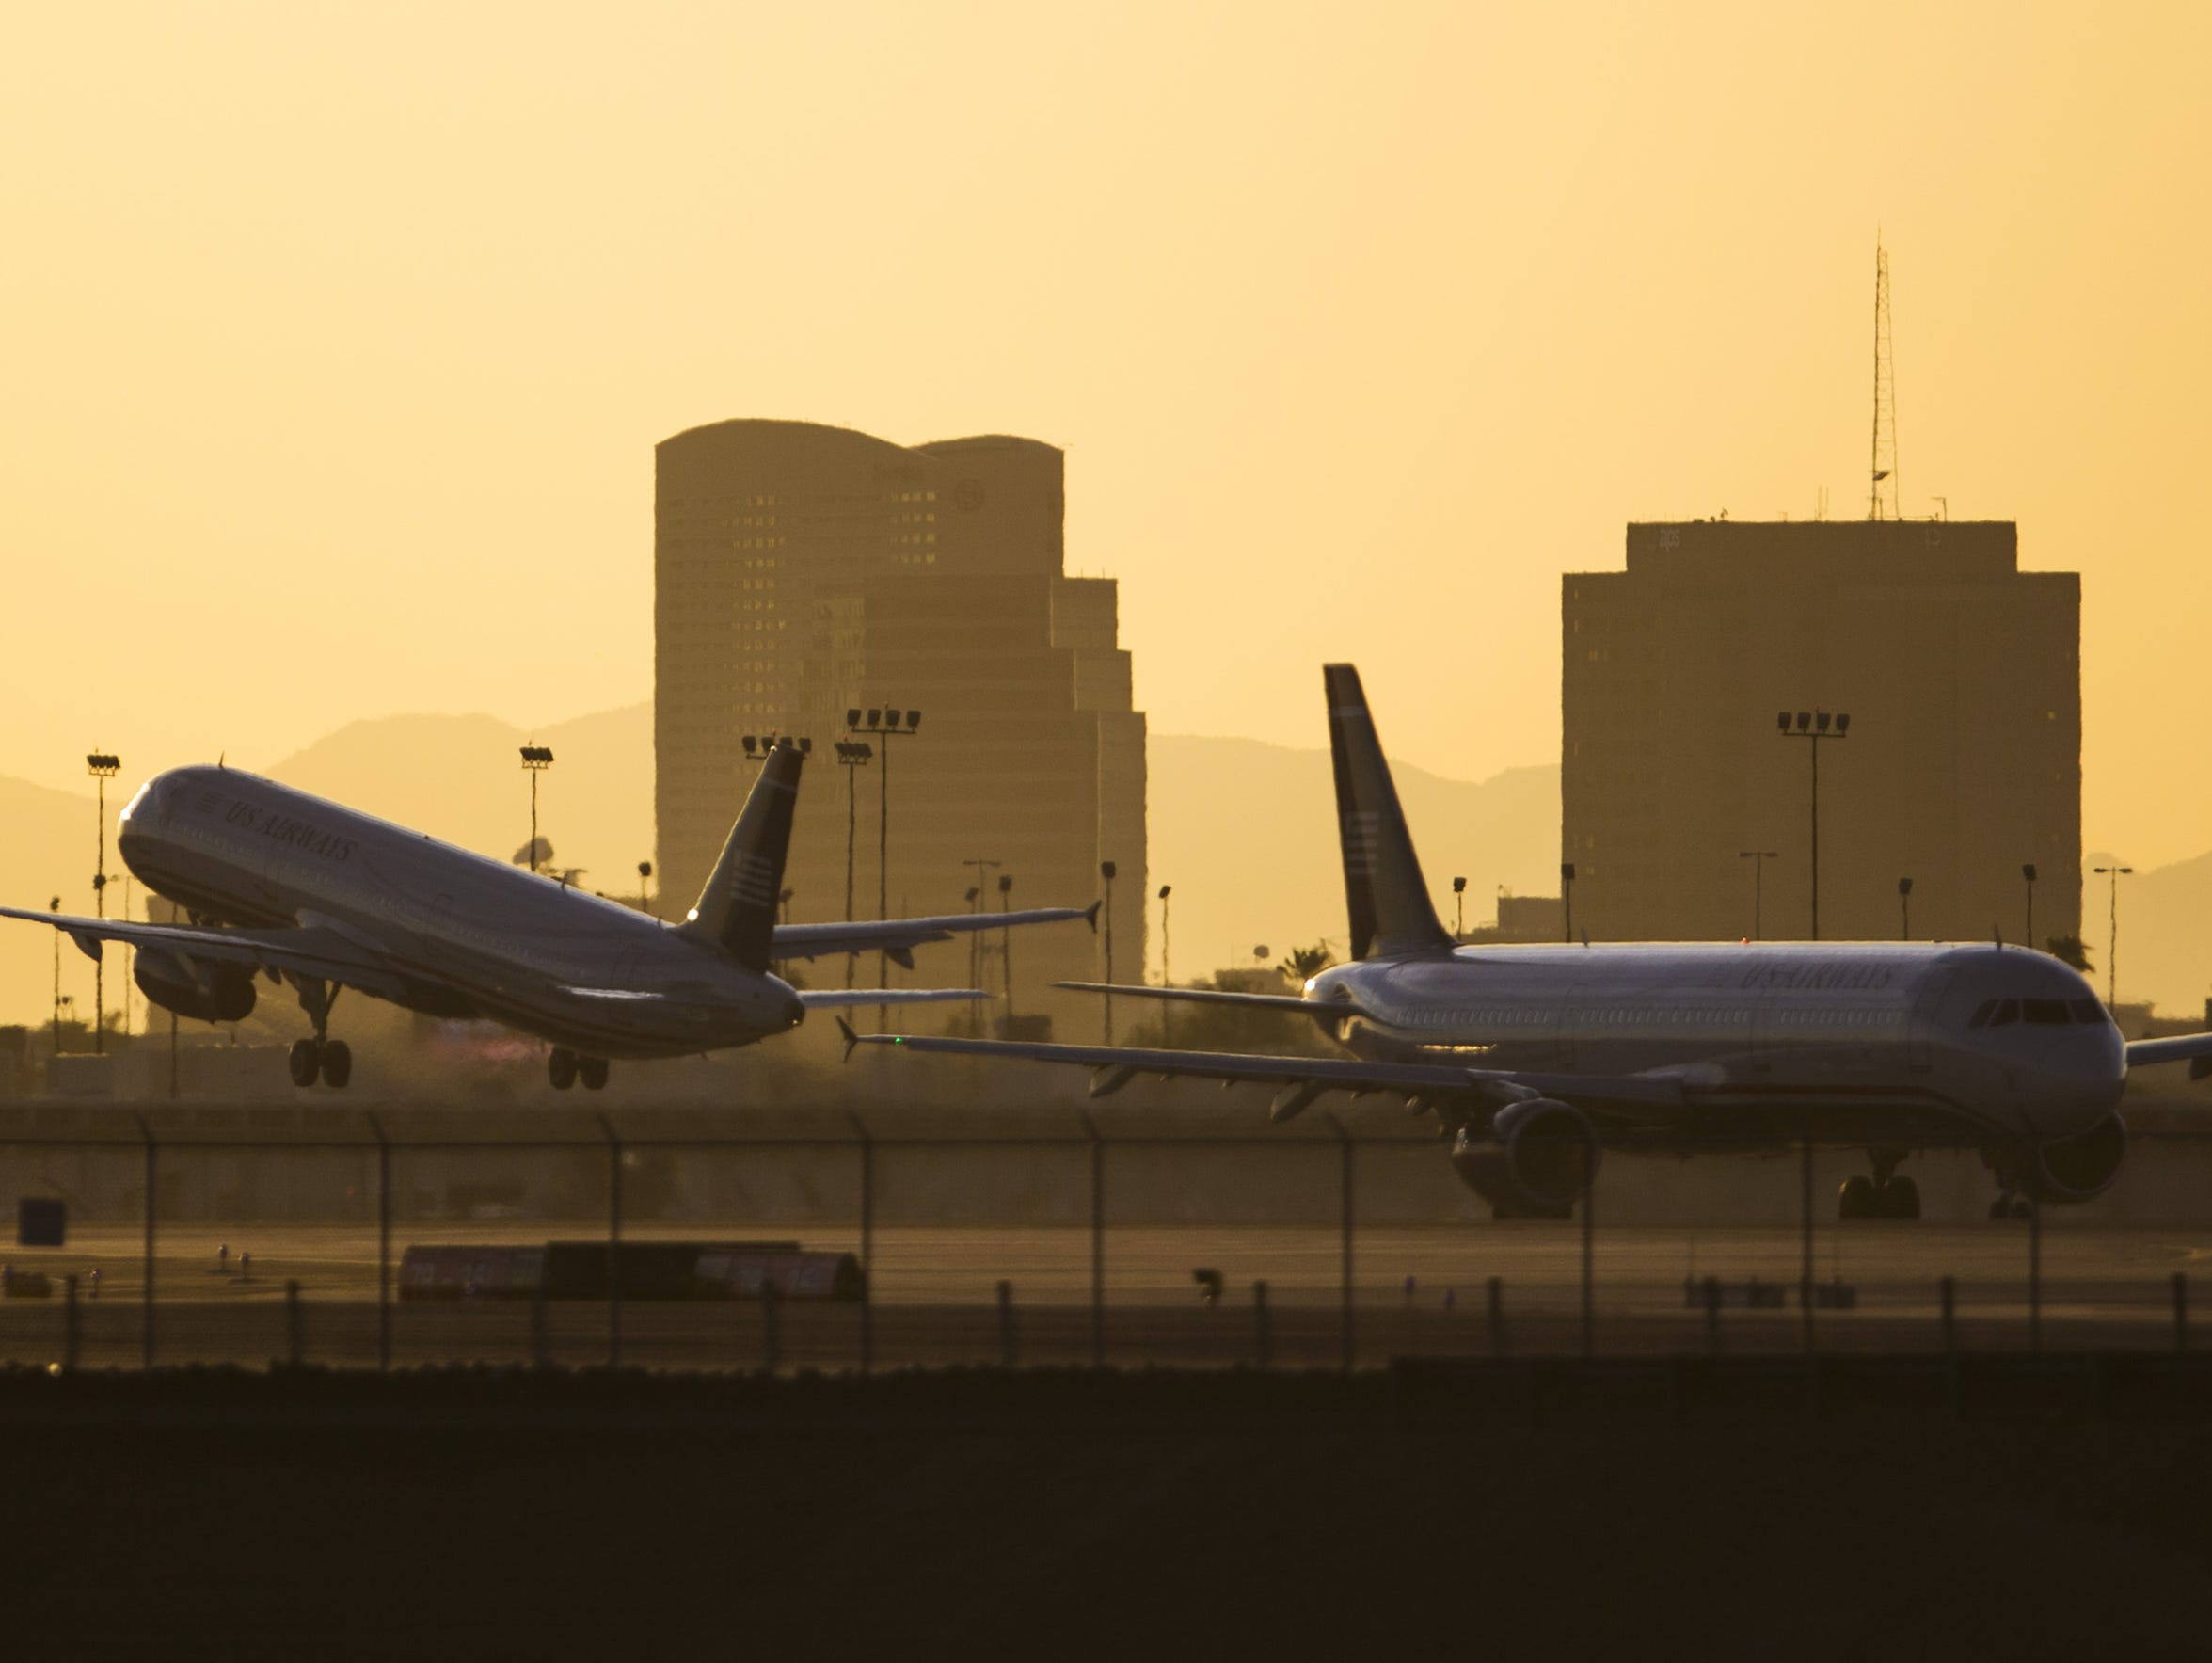 Phoenix is suing the FAA for changing flight routes